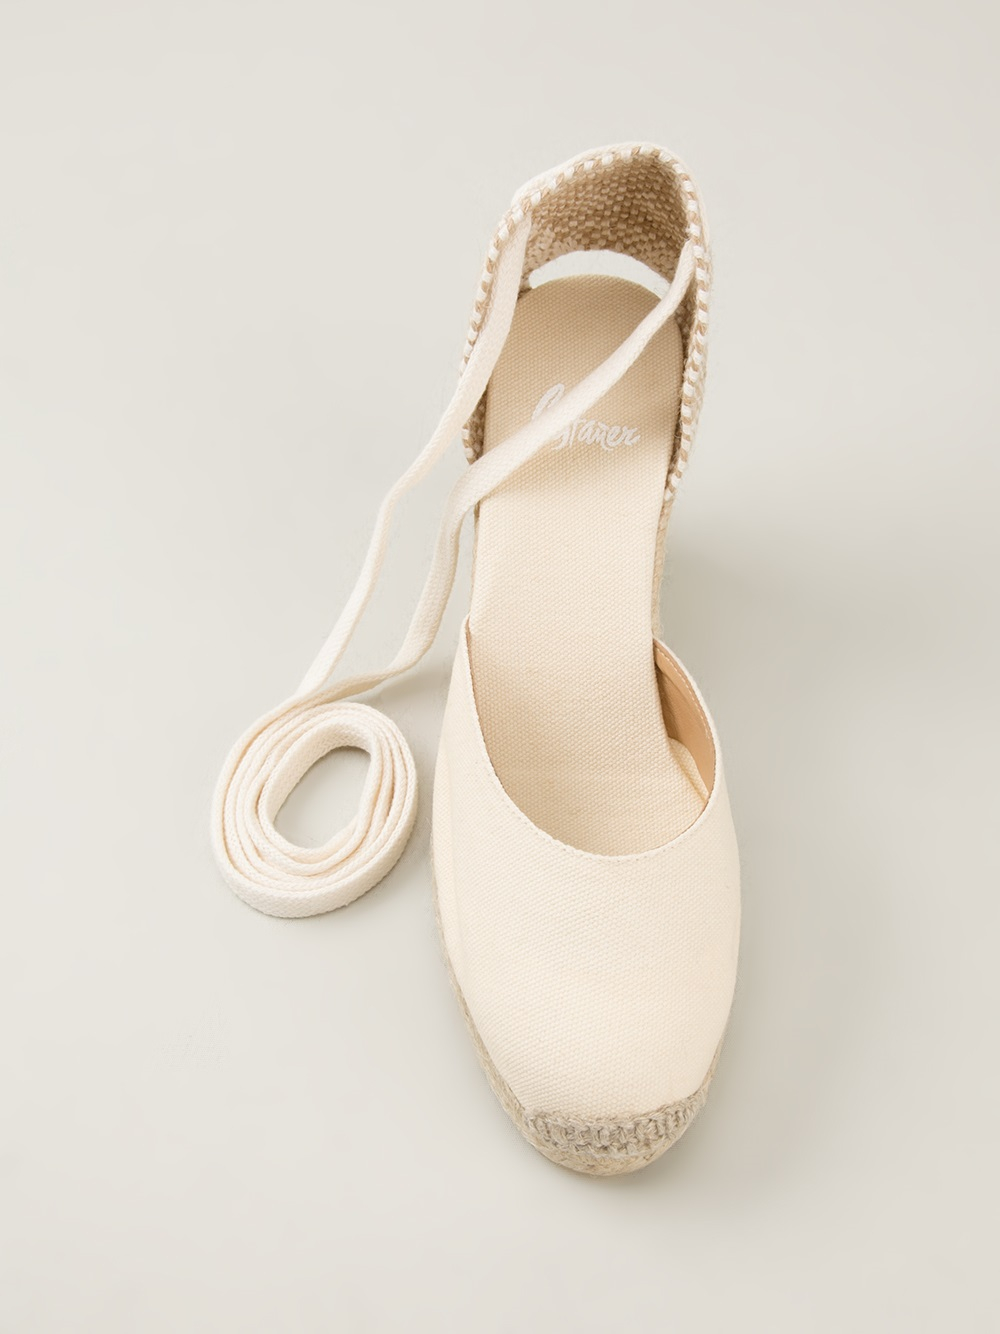 20506fc309e Castaner Carina Espadrille Sandals in Natural - Lyst